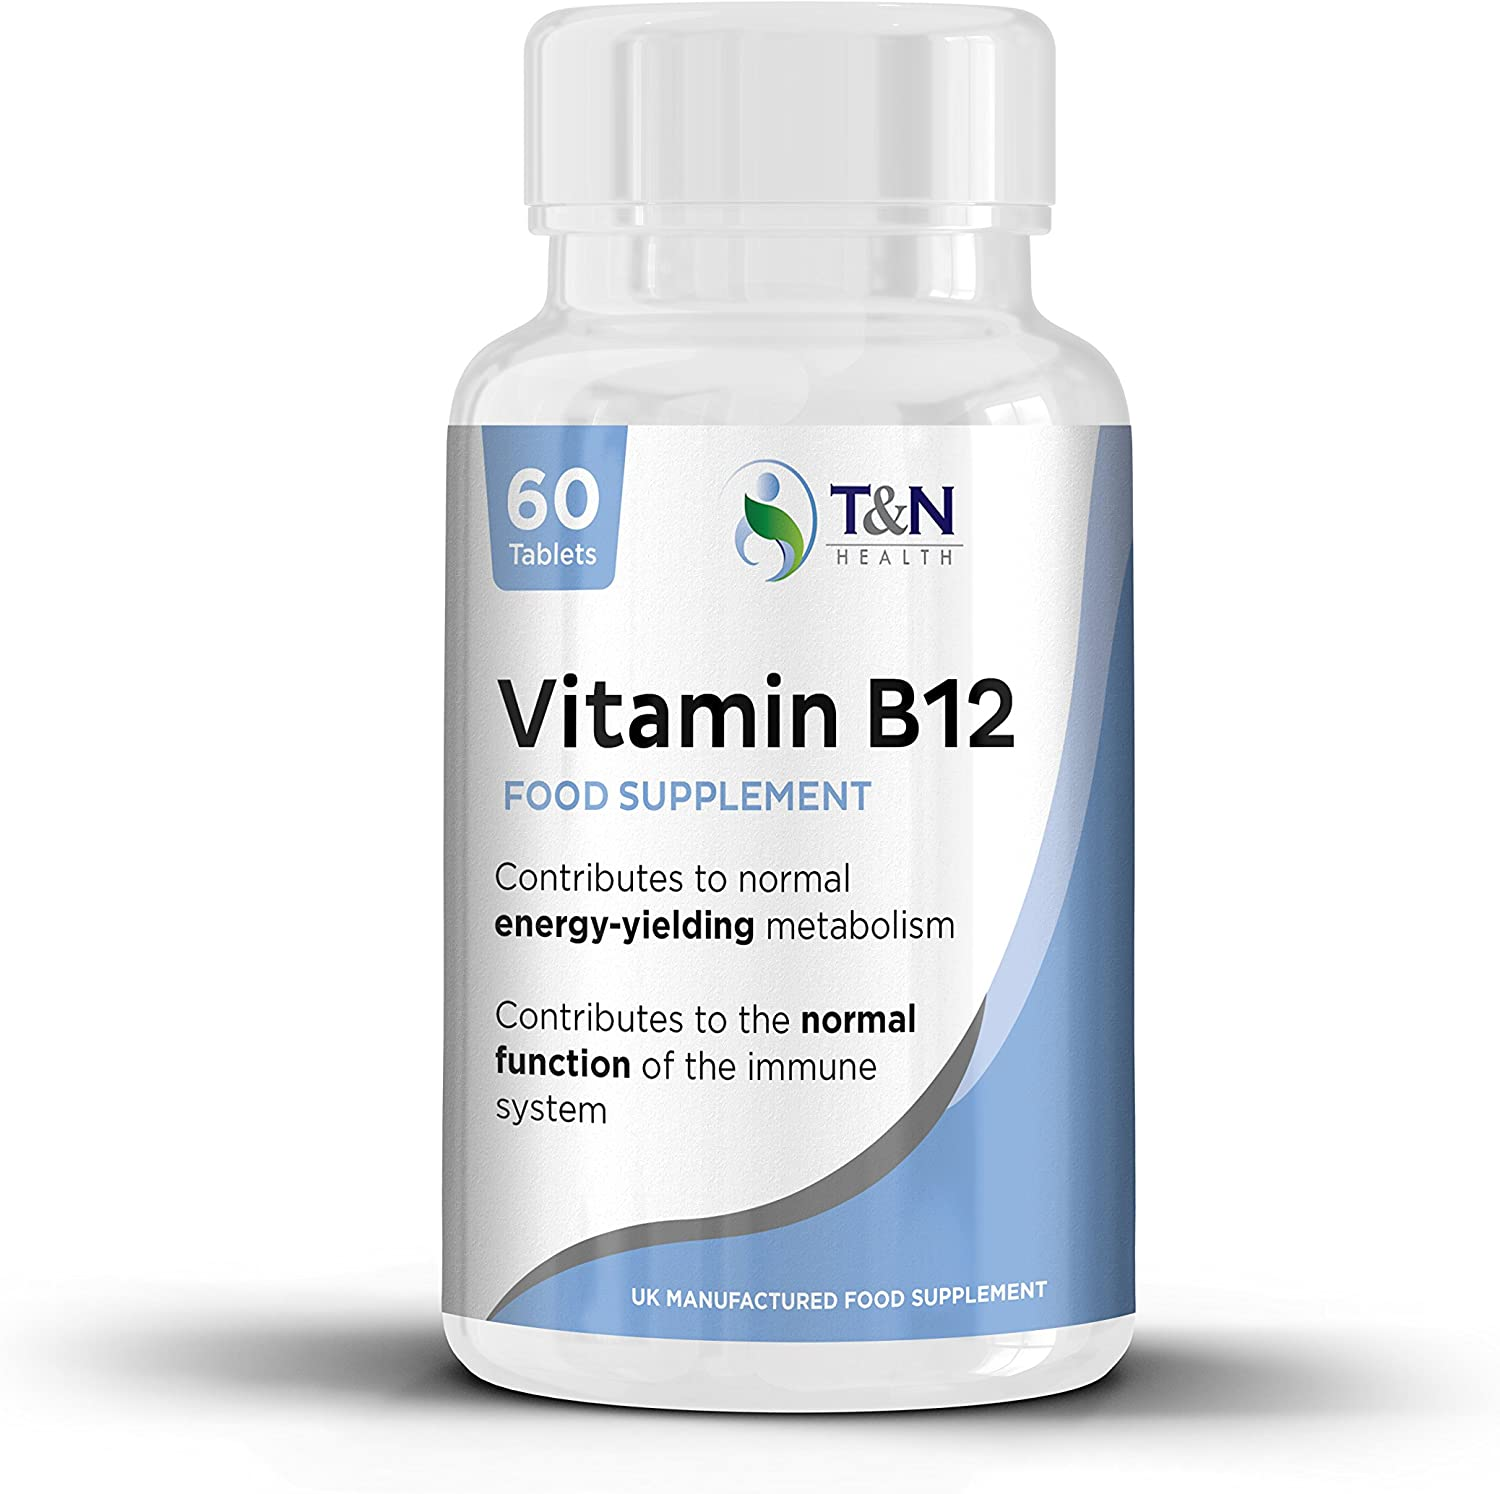 Vitamin B12 Tablets - Suitable for Vegetarians and Vegans Requiring Sublingual  B12 Supplementation: Amazon.co.uk: Health & Personal Care